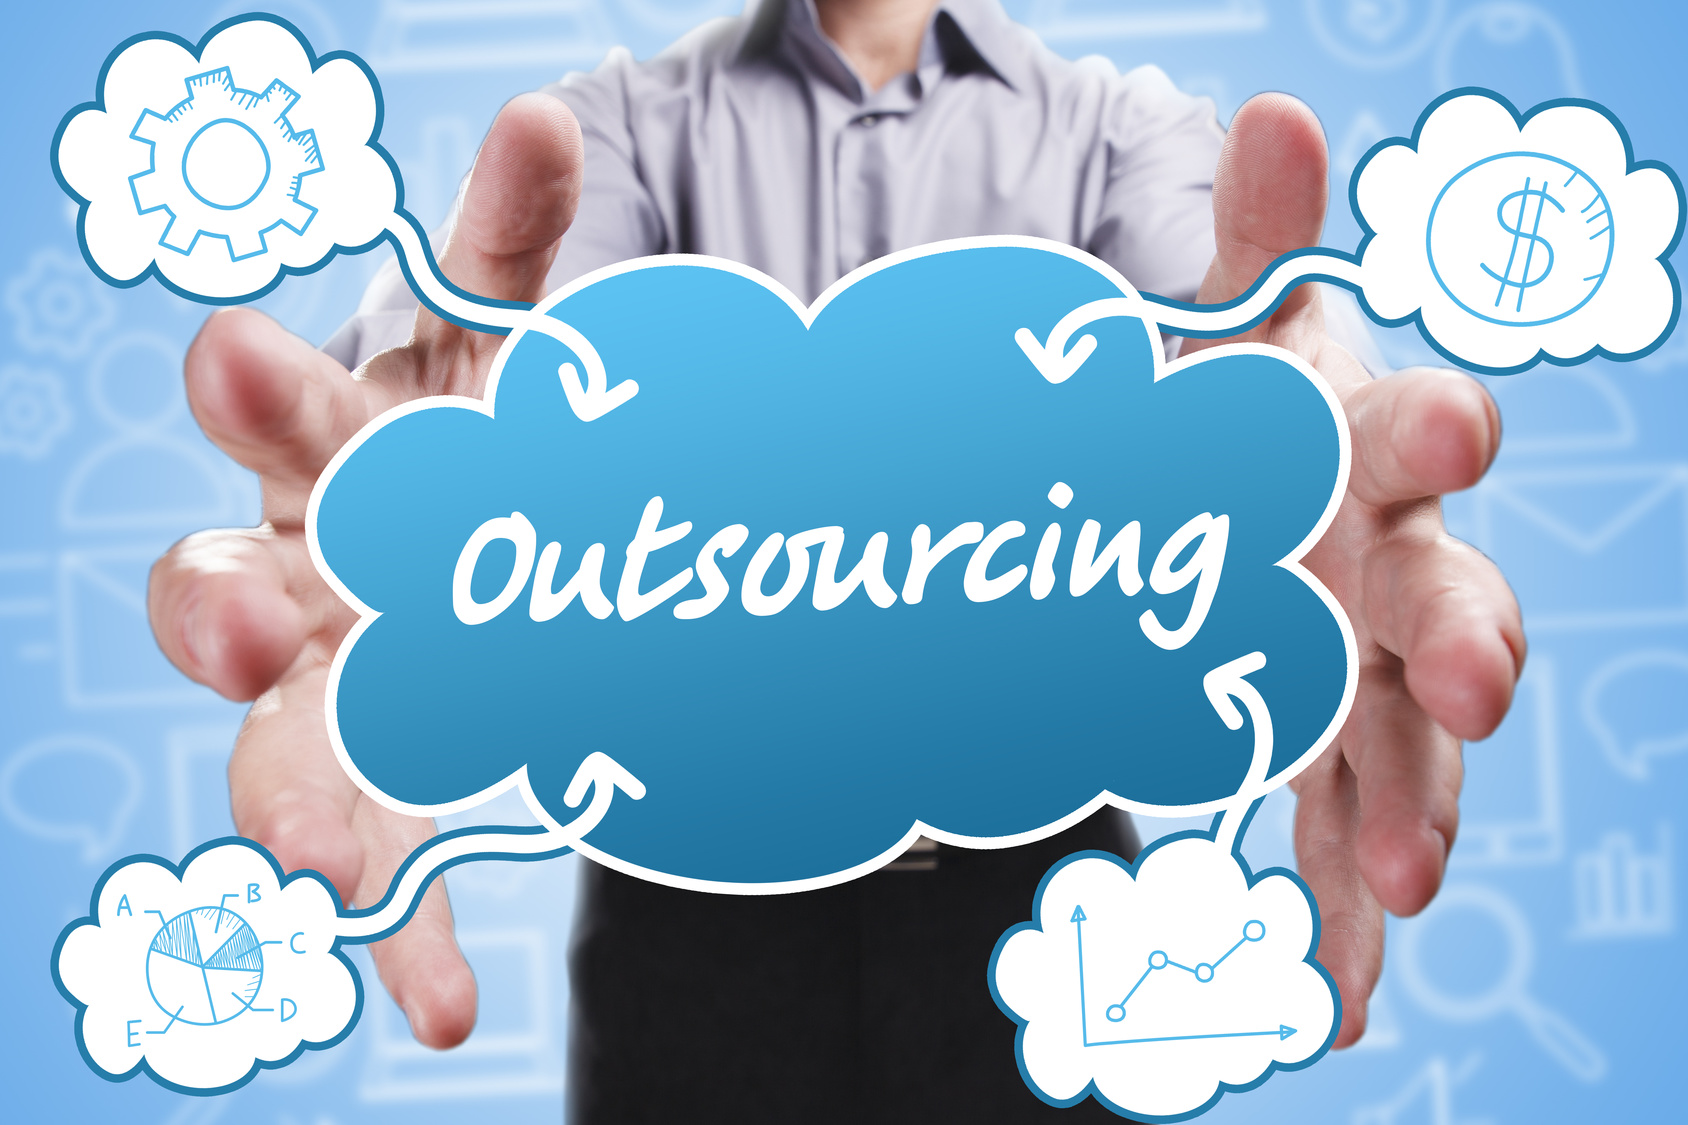 Many Benefits of Outsourcing